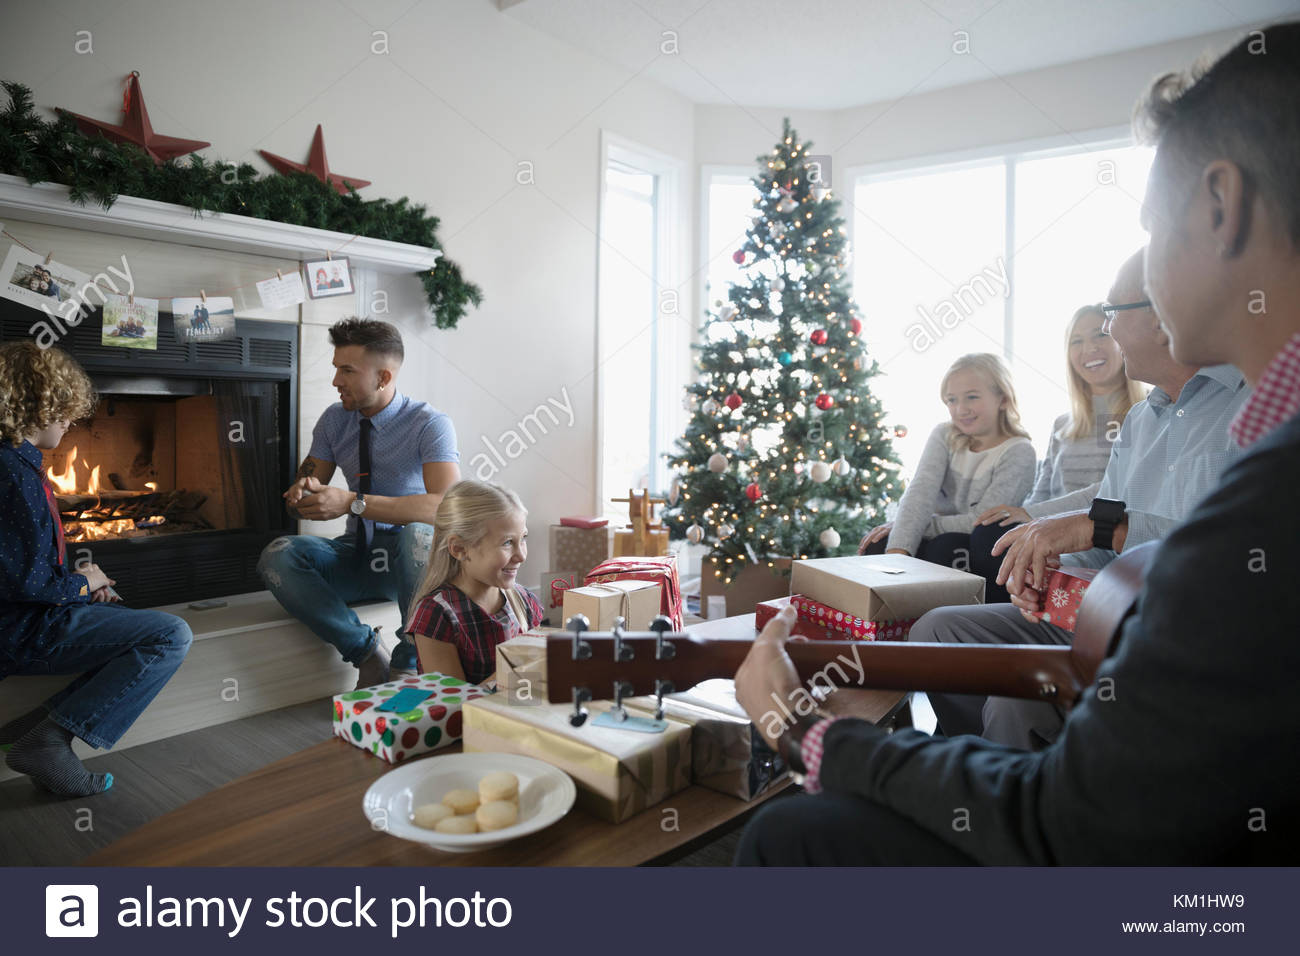 Multi-generation family playing guitar and enjoying fire in Christmas living room - Stock Image